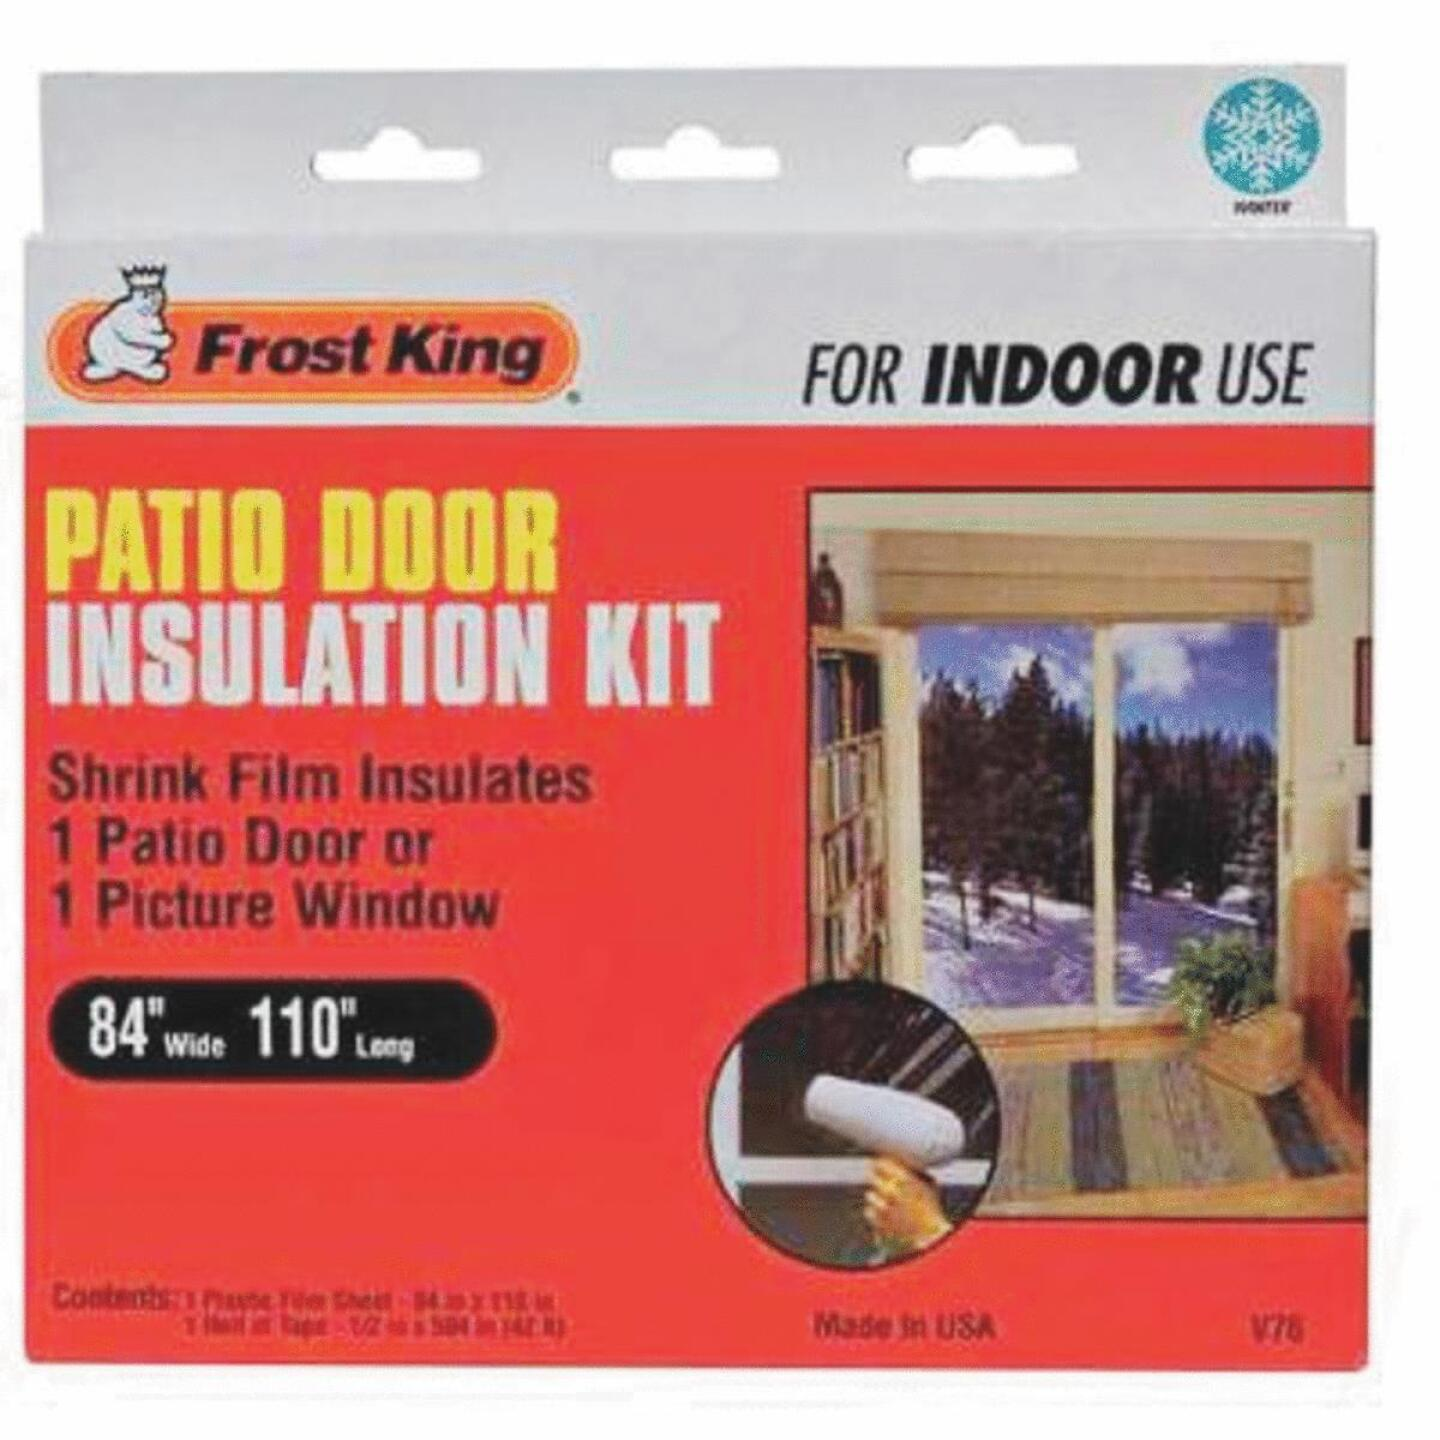 Frost King Indoor 84 In. x 110 In. Patio Door or Picture Window Insulation Kit Image 1